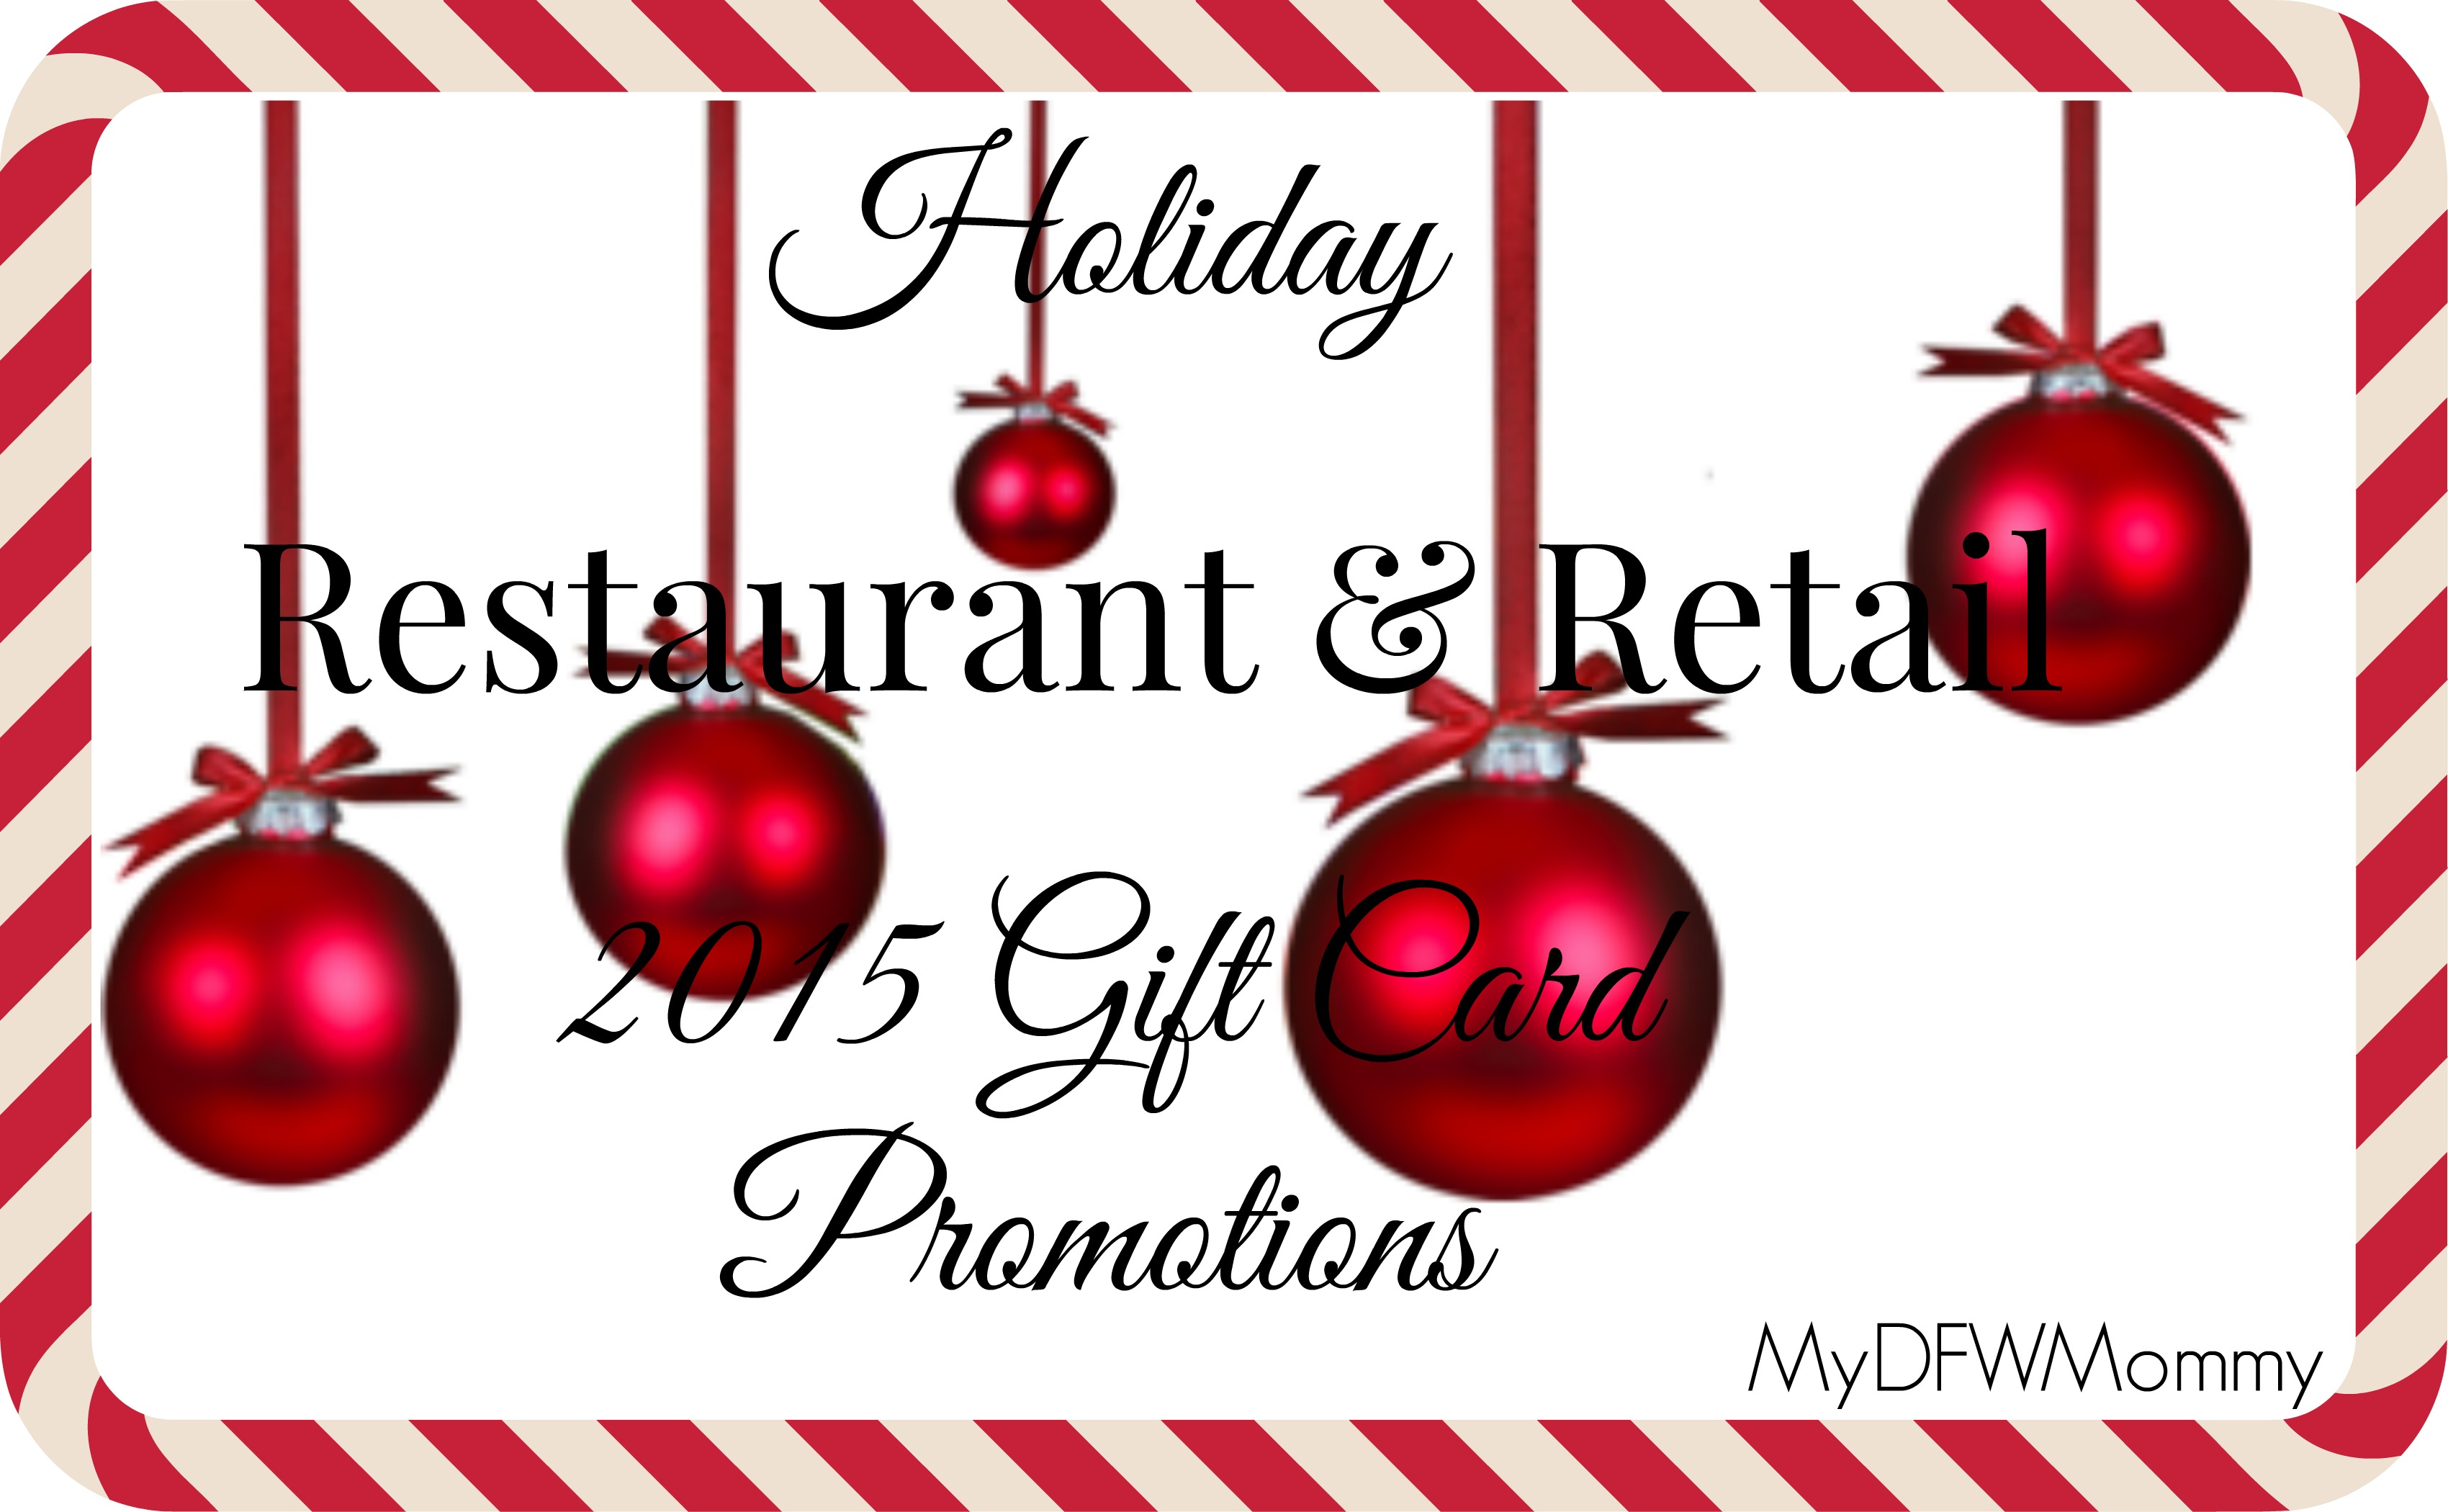 Restaurant & Retail Holiday Gift Card Deals - My Dallas Mommy